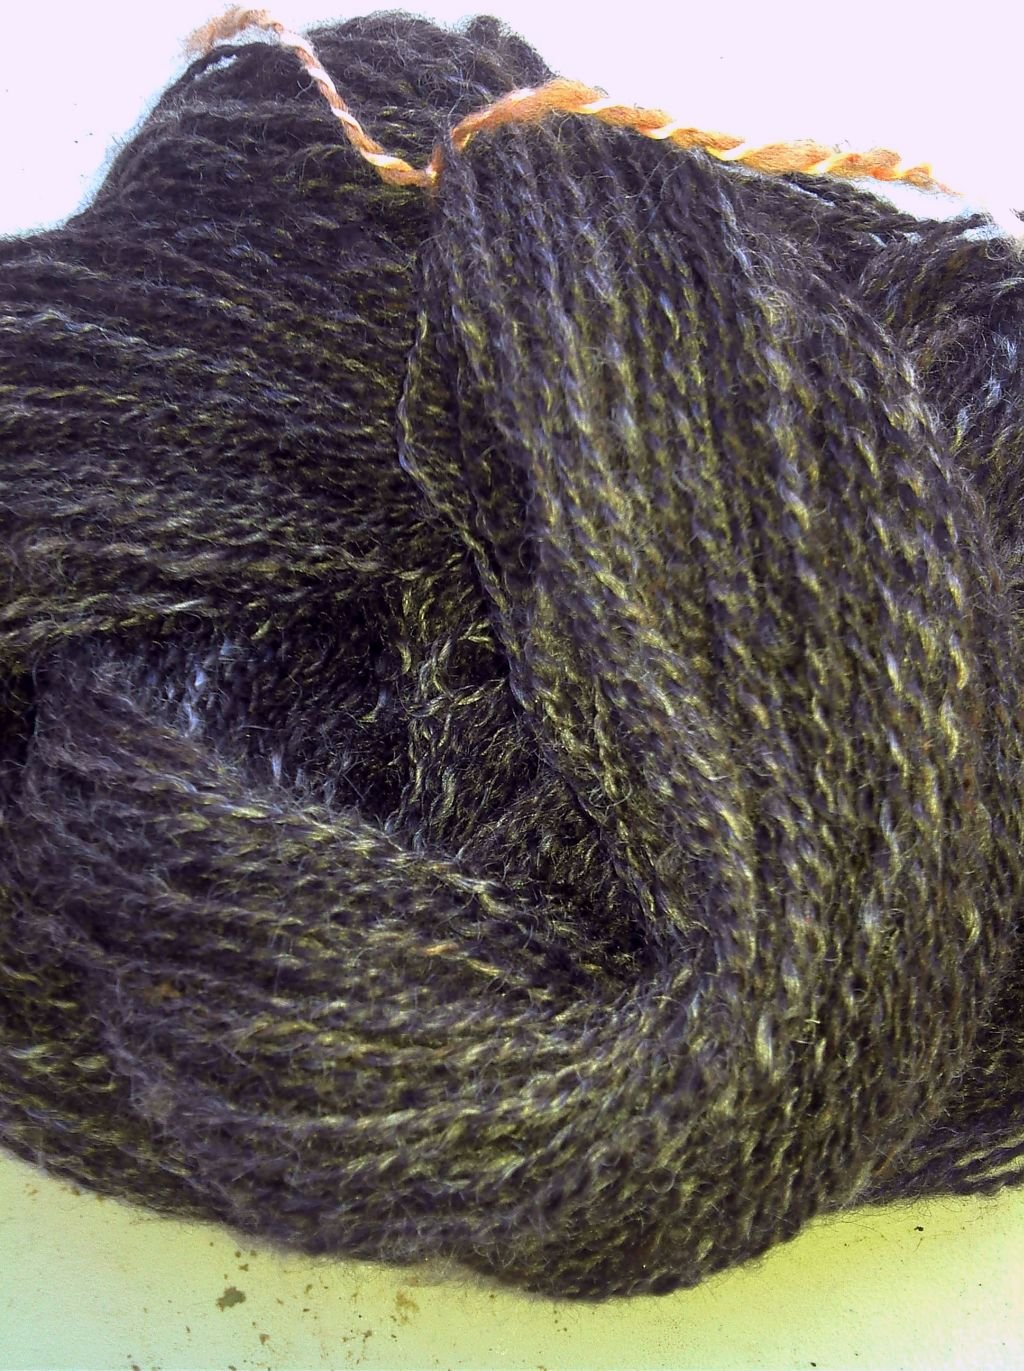 English Leicester and Finn handspun yarn from Inverleigh Farms Fiber Supplies